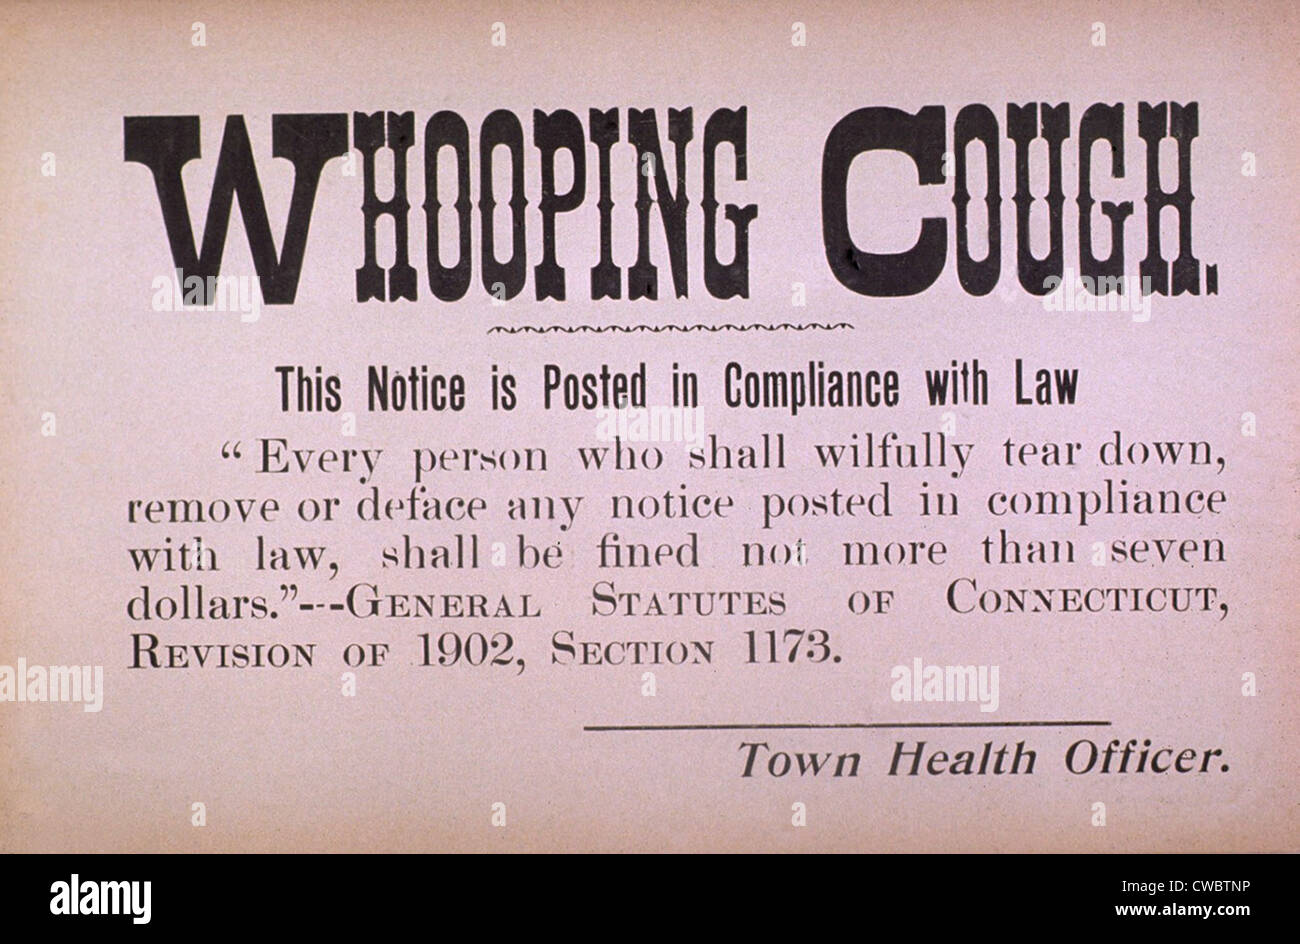 Early 20th century quarantine sign for the contagious disease whooping cough. - Stock Image